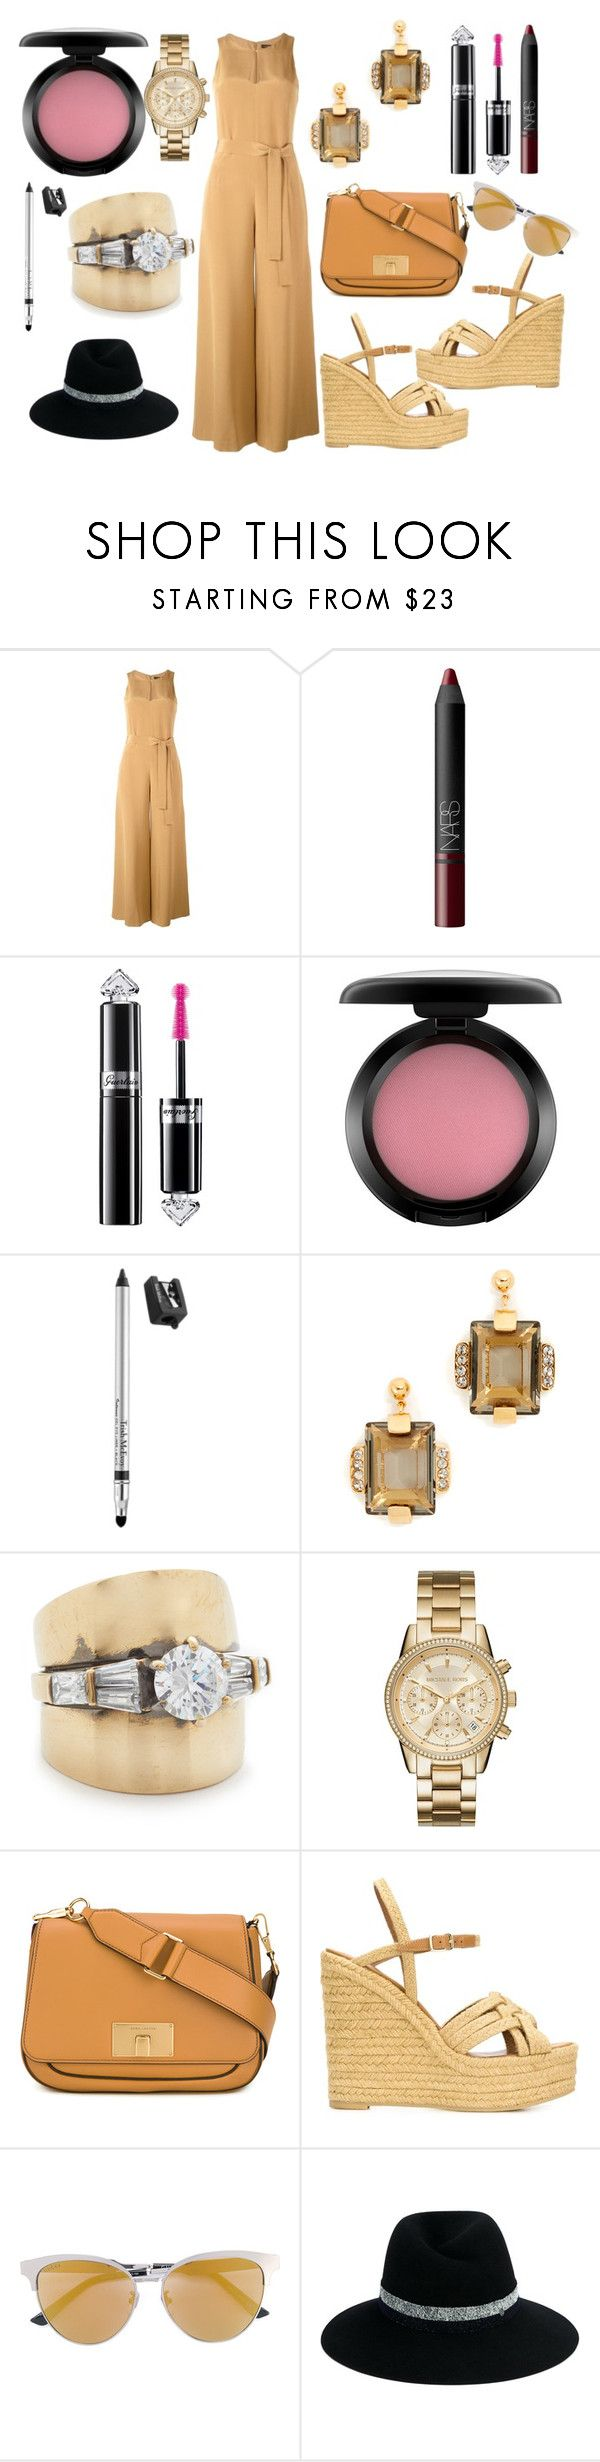 """""""Classy"""" by hillarymaguire ❤ liked on Polyvore featuring Catherine Quin, NARS Cosmetics, Guerlain, MAC Cosmetics, Trish McEvoy, Marni, Iosselliani, MICHAEL Michael Kors, Marc Jacobs and Yves Saint Laurent"""